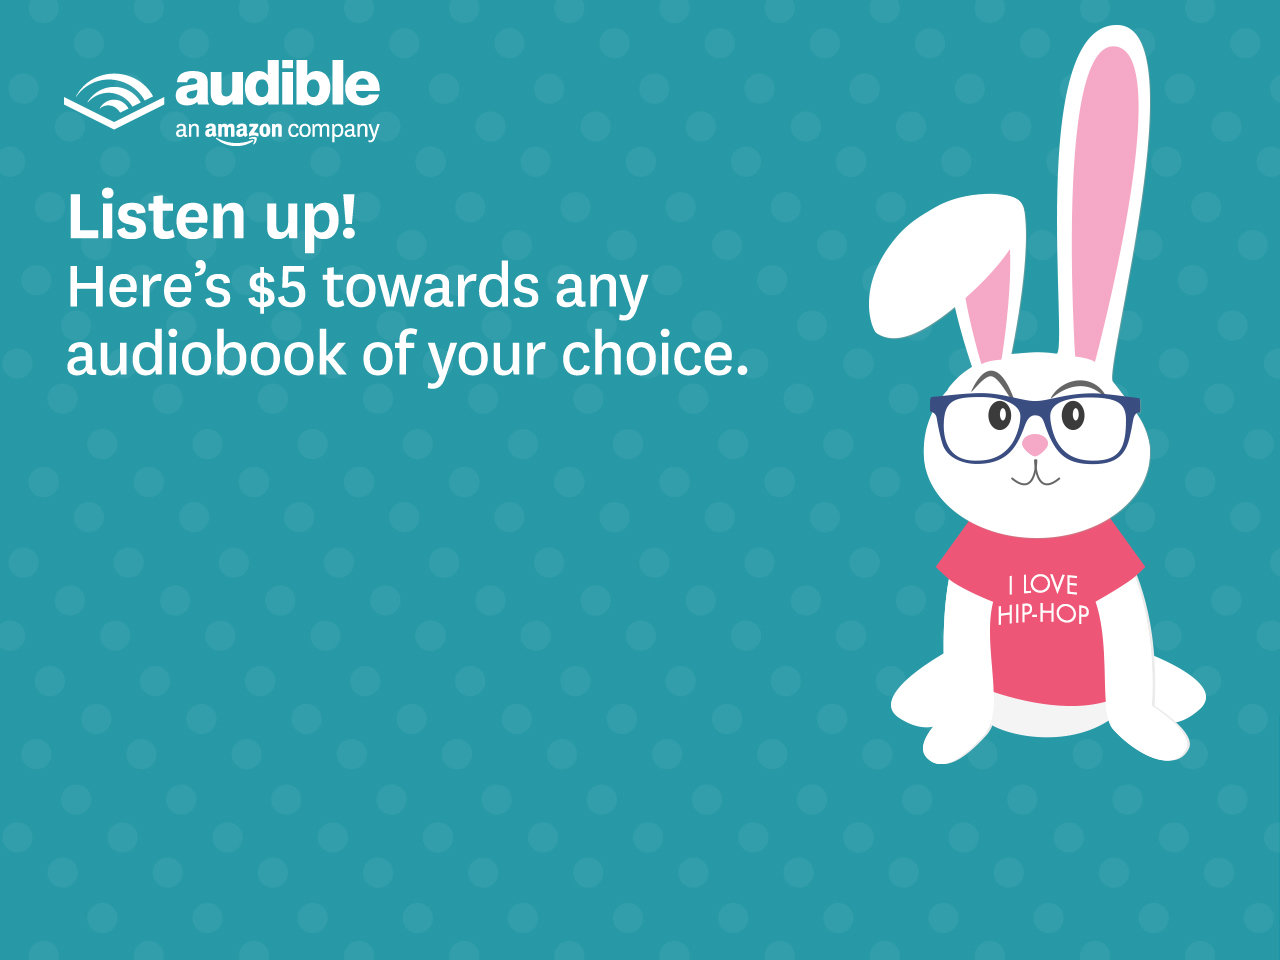 The trial gives new members two free Audible credits. Create an Audible account to complete the purchase. Provide a valid check card or credit card number and expiration date. The card number is kept on file for the duration of the membership. As of March , Audible charges a .